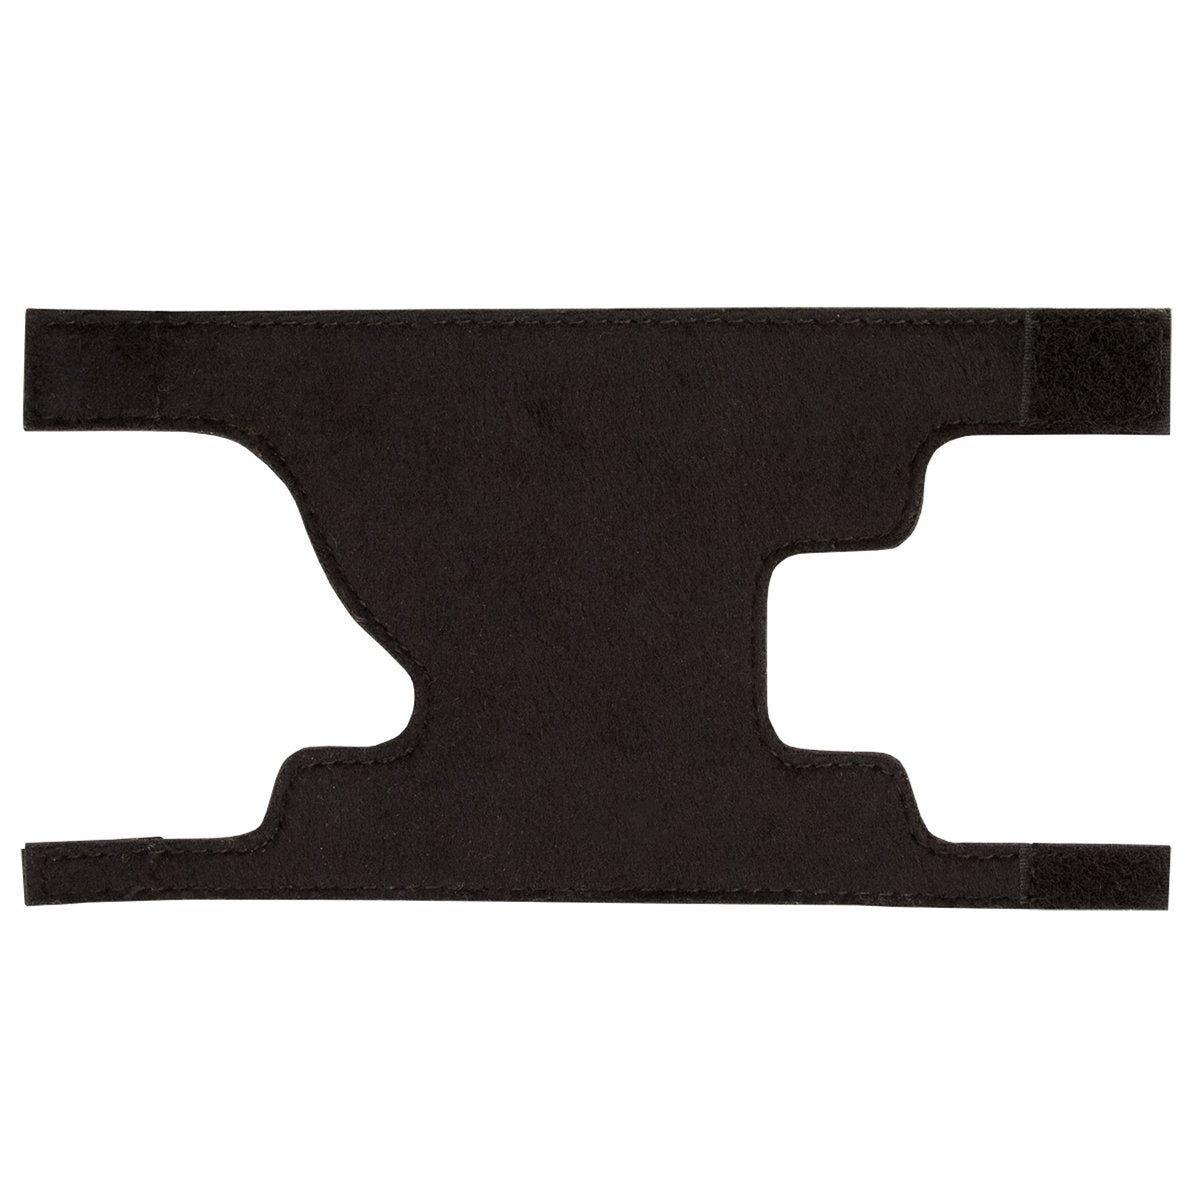 Protec - Leather Valve Guard for Cornet-Accessories-Protec-Music Elements